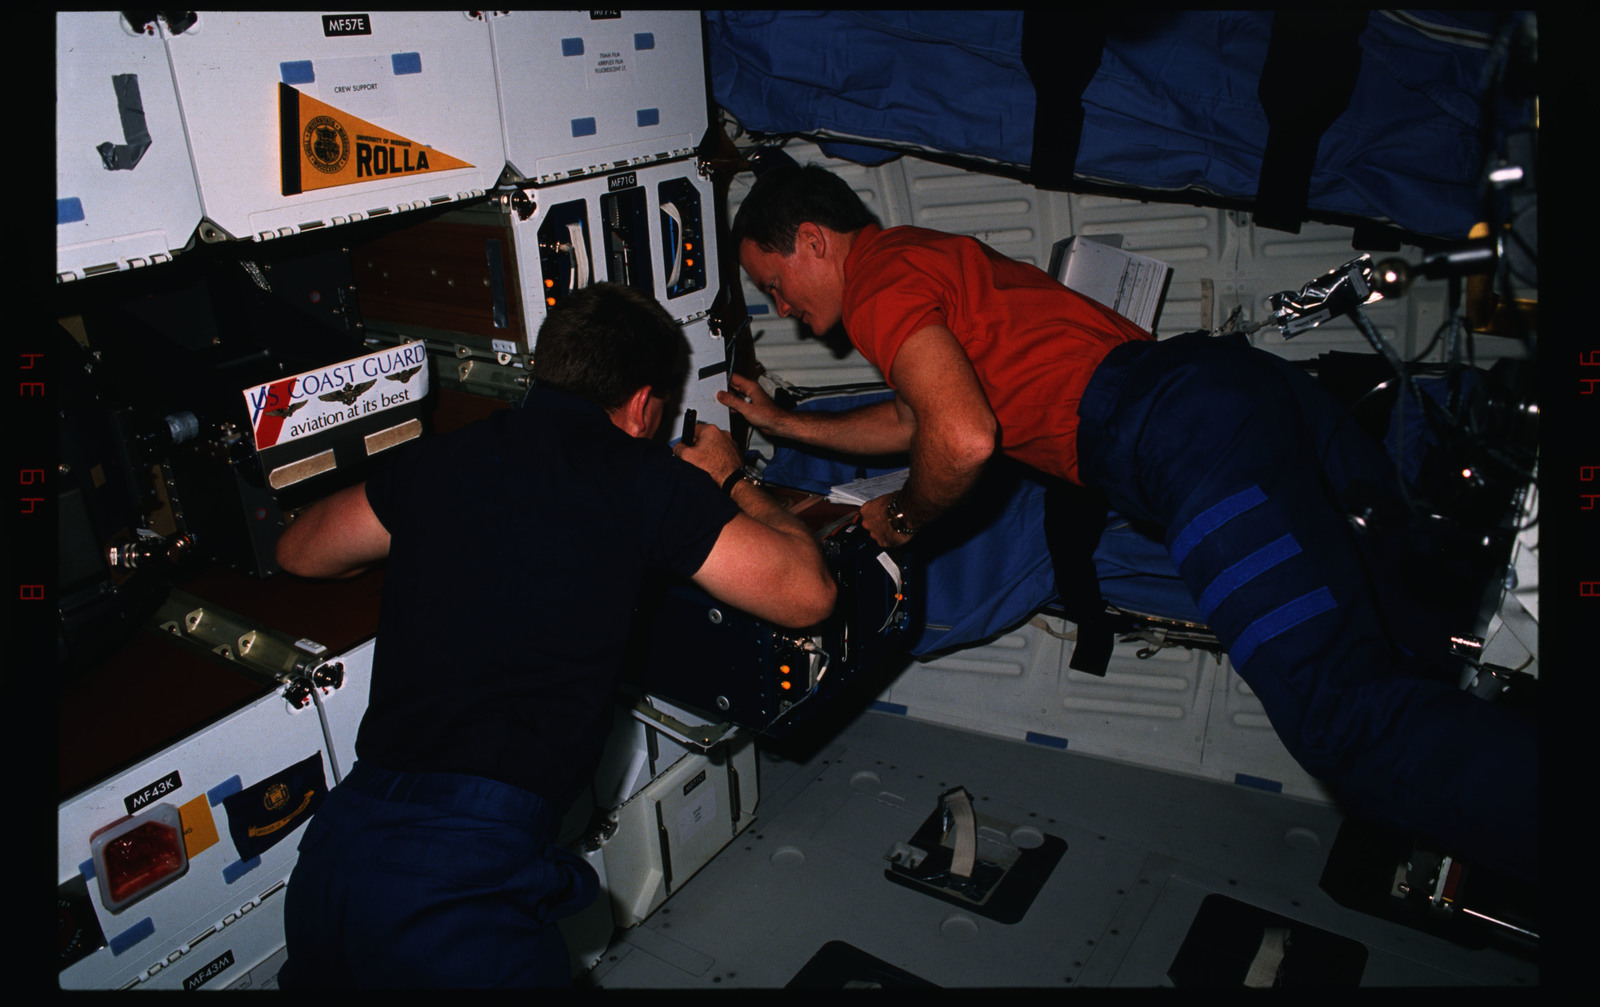 S41-06-021 - STS-041 - Melnick & Akers work with the Physiological Systems Experiment on Discovery